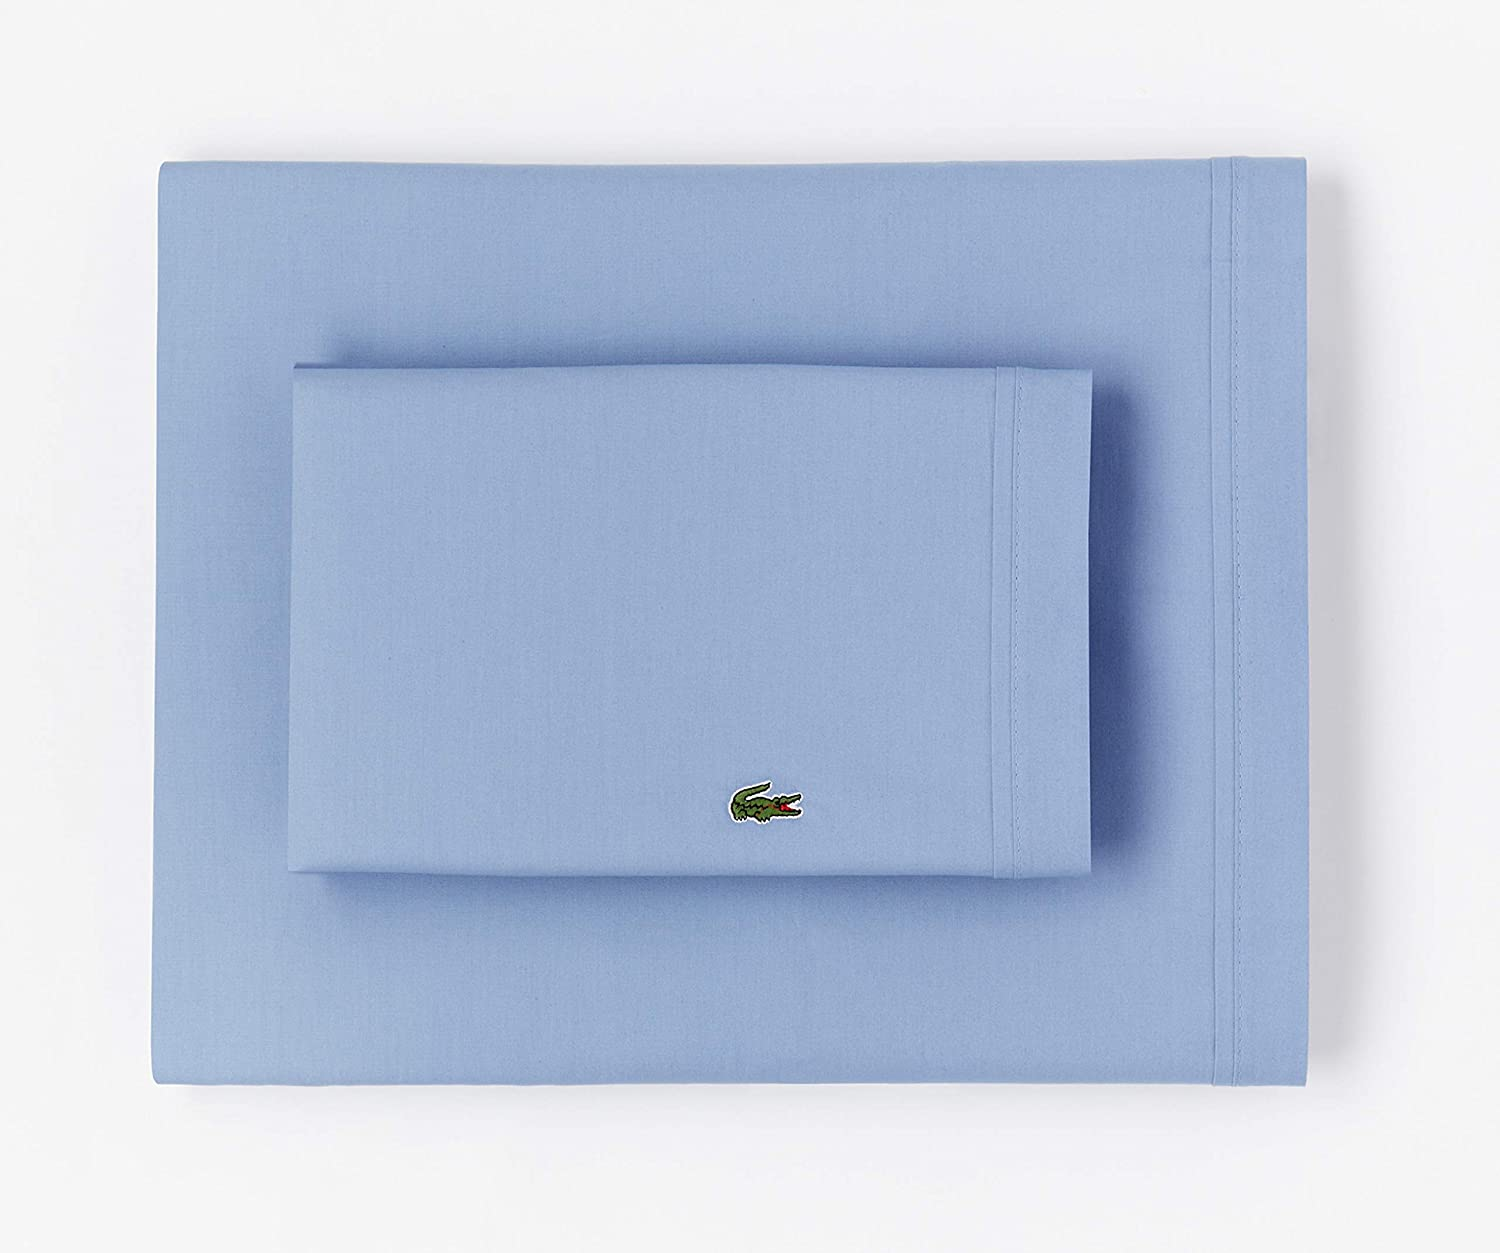 Lacoste 100% Cotton Percale Sheet Set